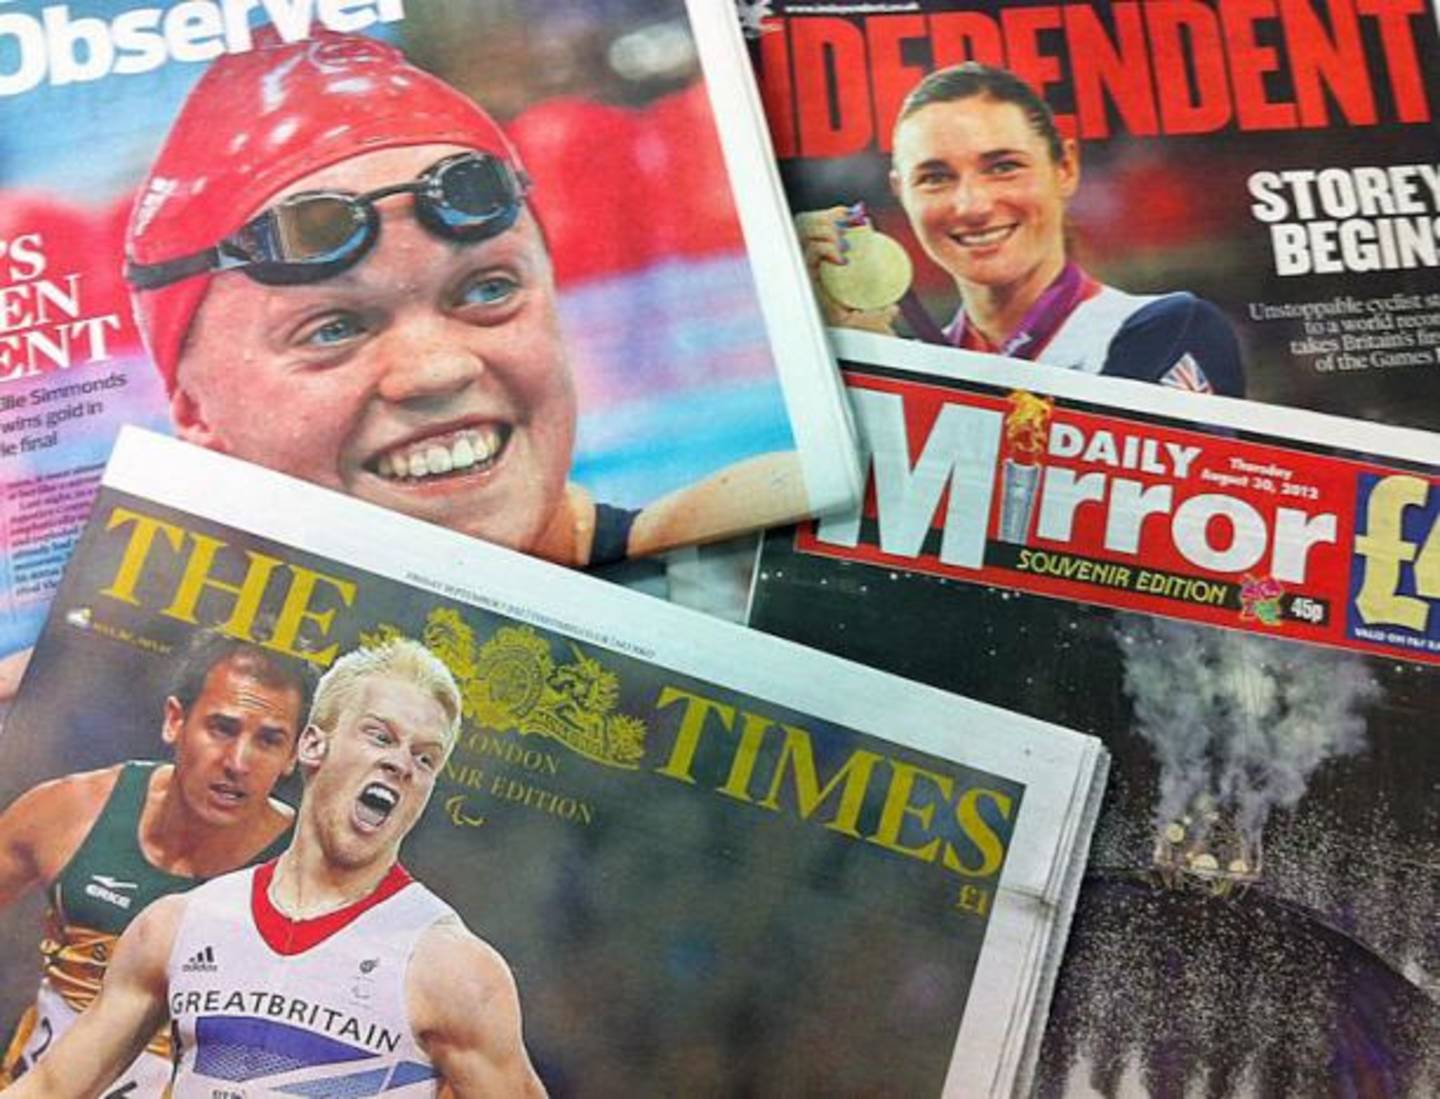 2012 Paralympics coverage on newspaper front pages